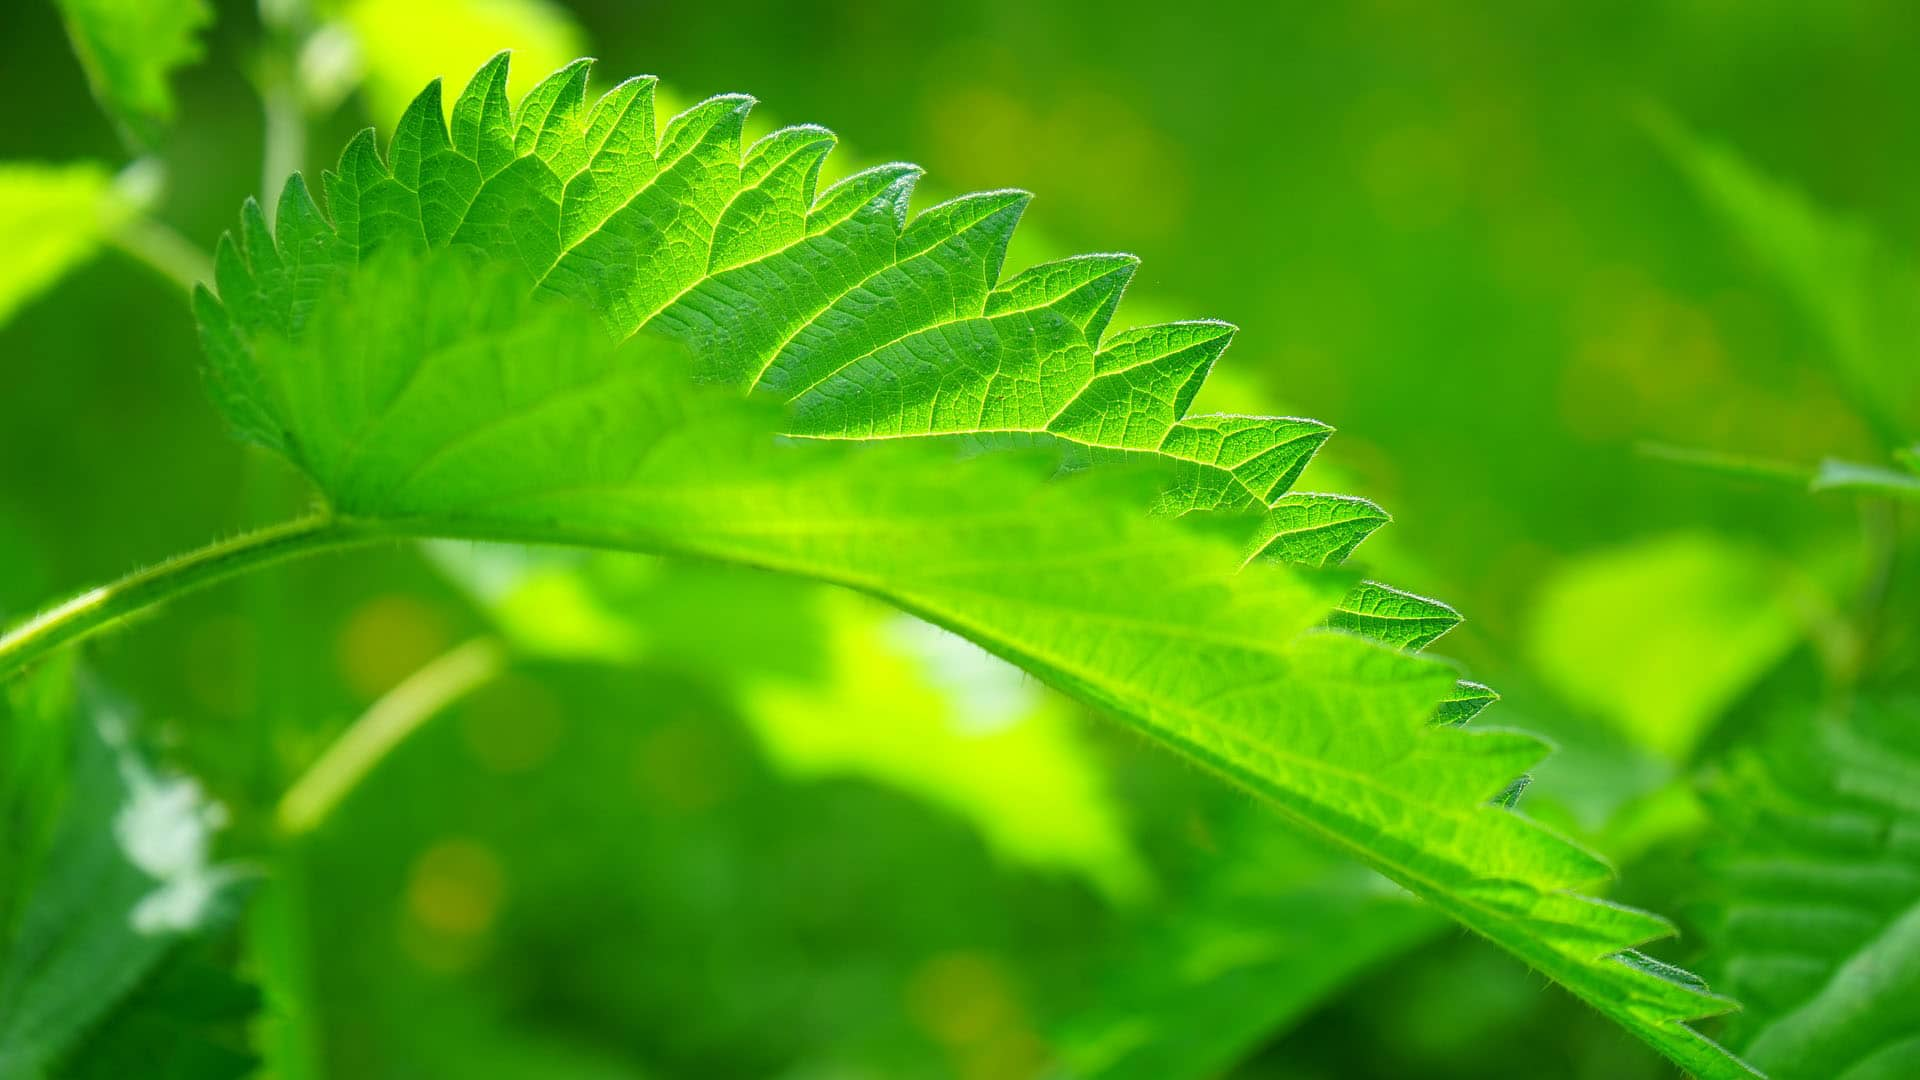 Nettle Leaf (Urtica Dioica)